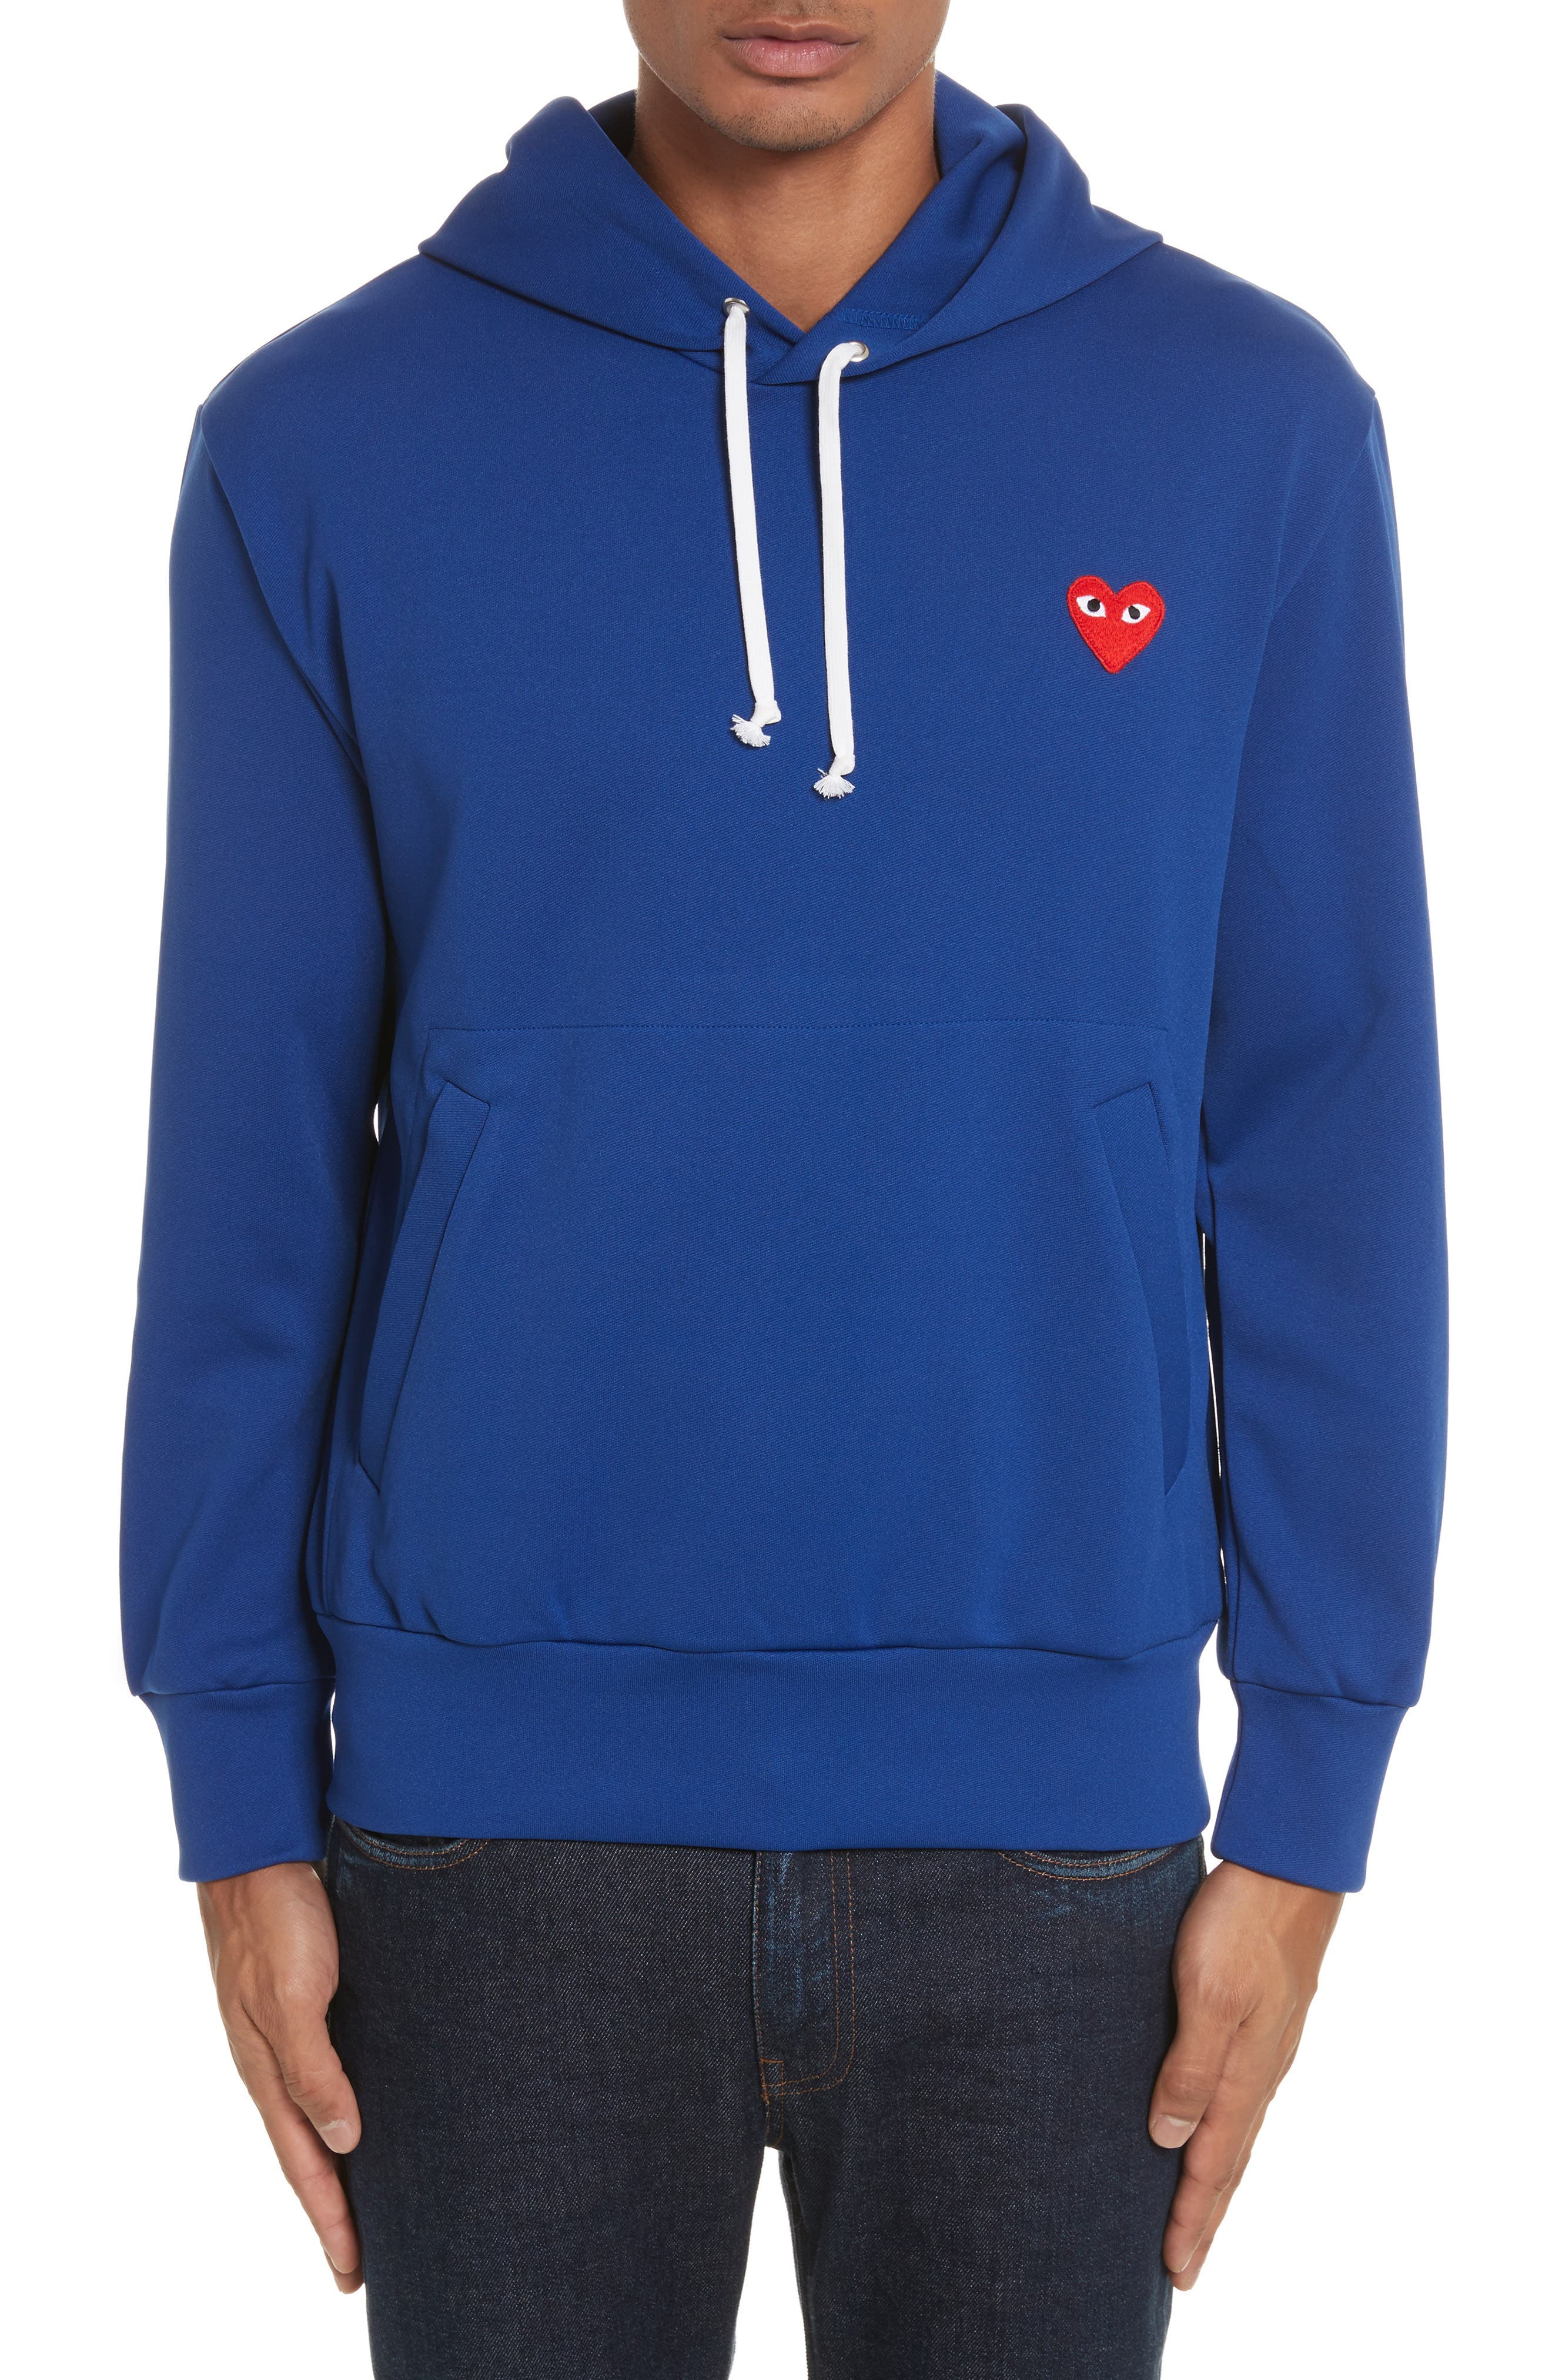 Comme des Garçons PLAY Pullover Hoodie,                             Main thumbnail 1, color,                             Navy